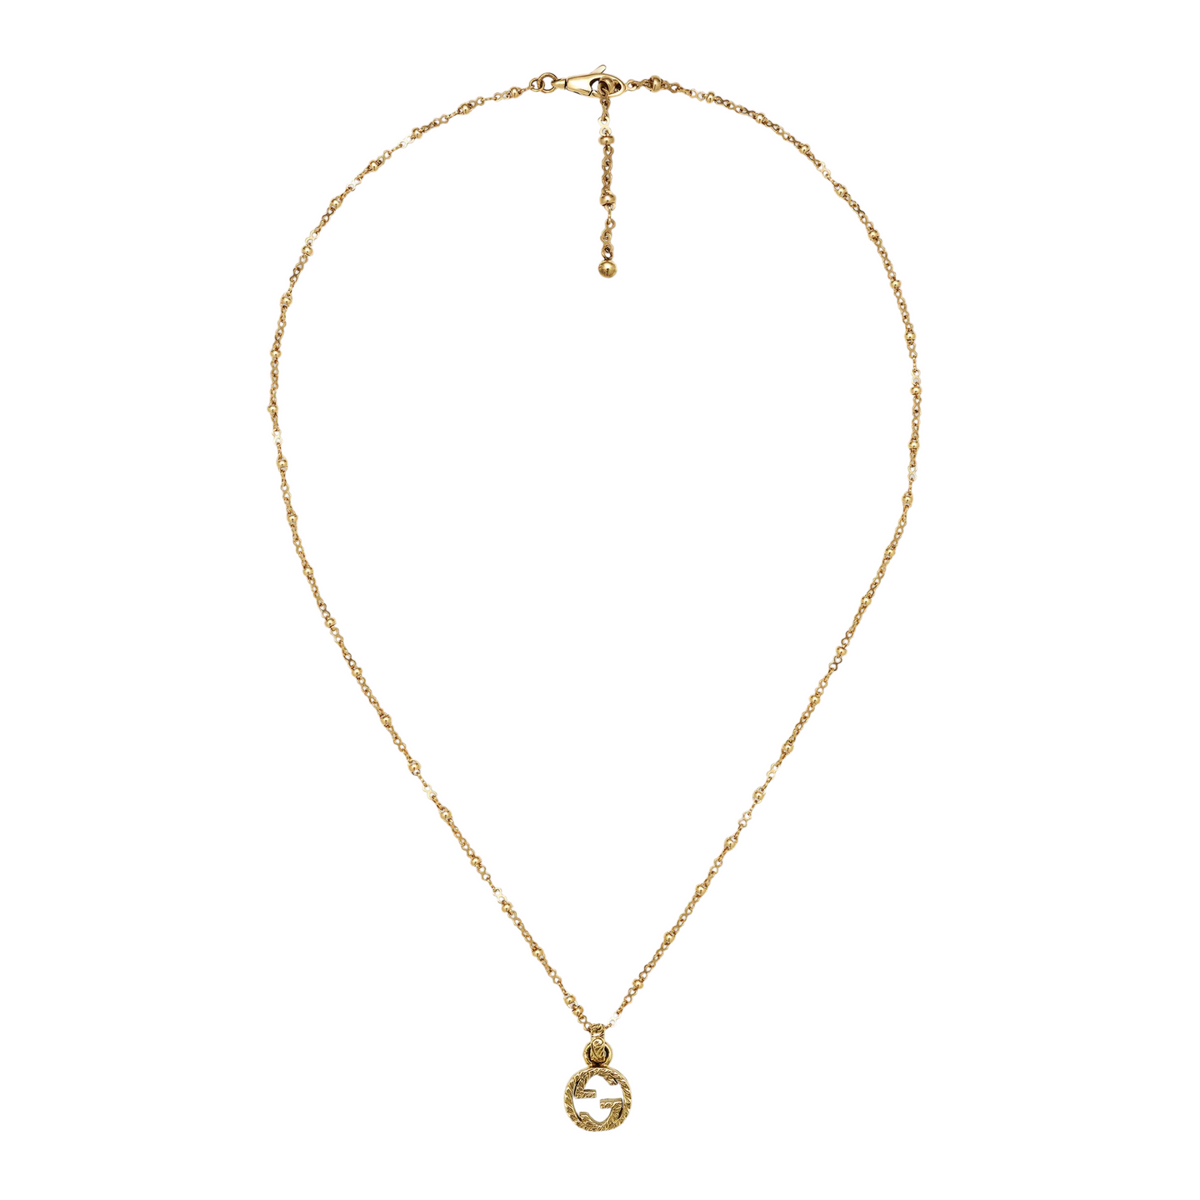 Interlocking G Necklac in 18k Yellow Gold